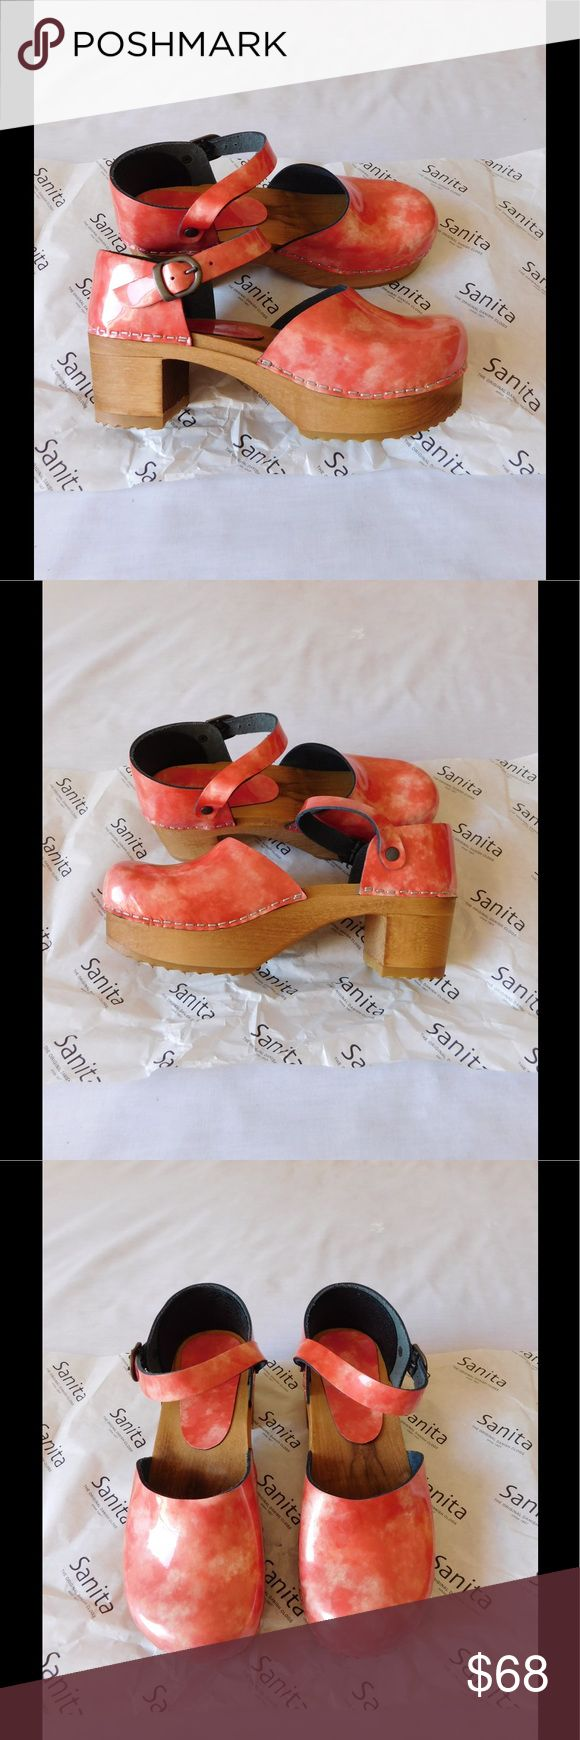 Adorable Coral Sanita Wooden Clogs W/Straps NWOT. These pair of clogs are really cute and adorable. Super comfy style. Gorgeous colors. Size 8.0W but fits 9.0 as well. Negotiable Price. Sanita Shoes Mules & Clogs